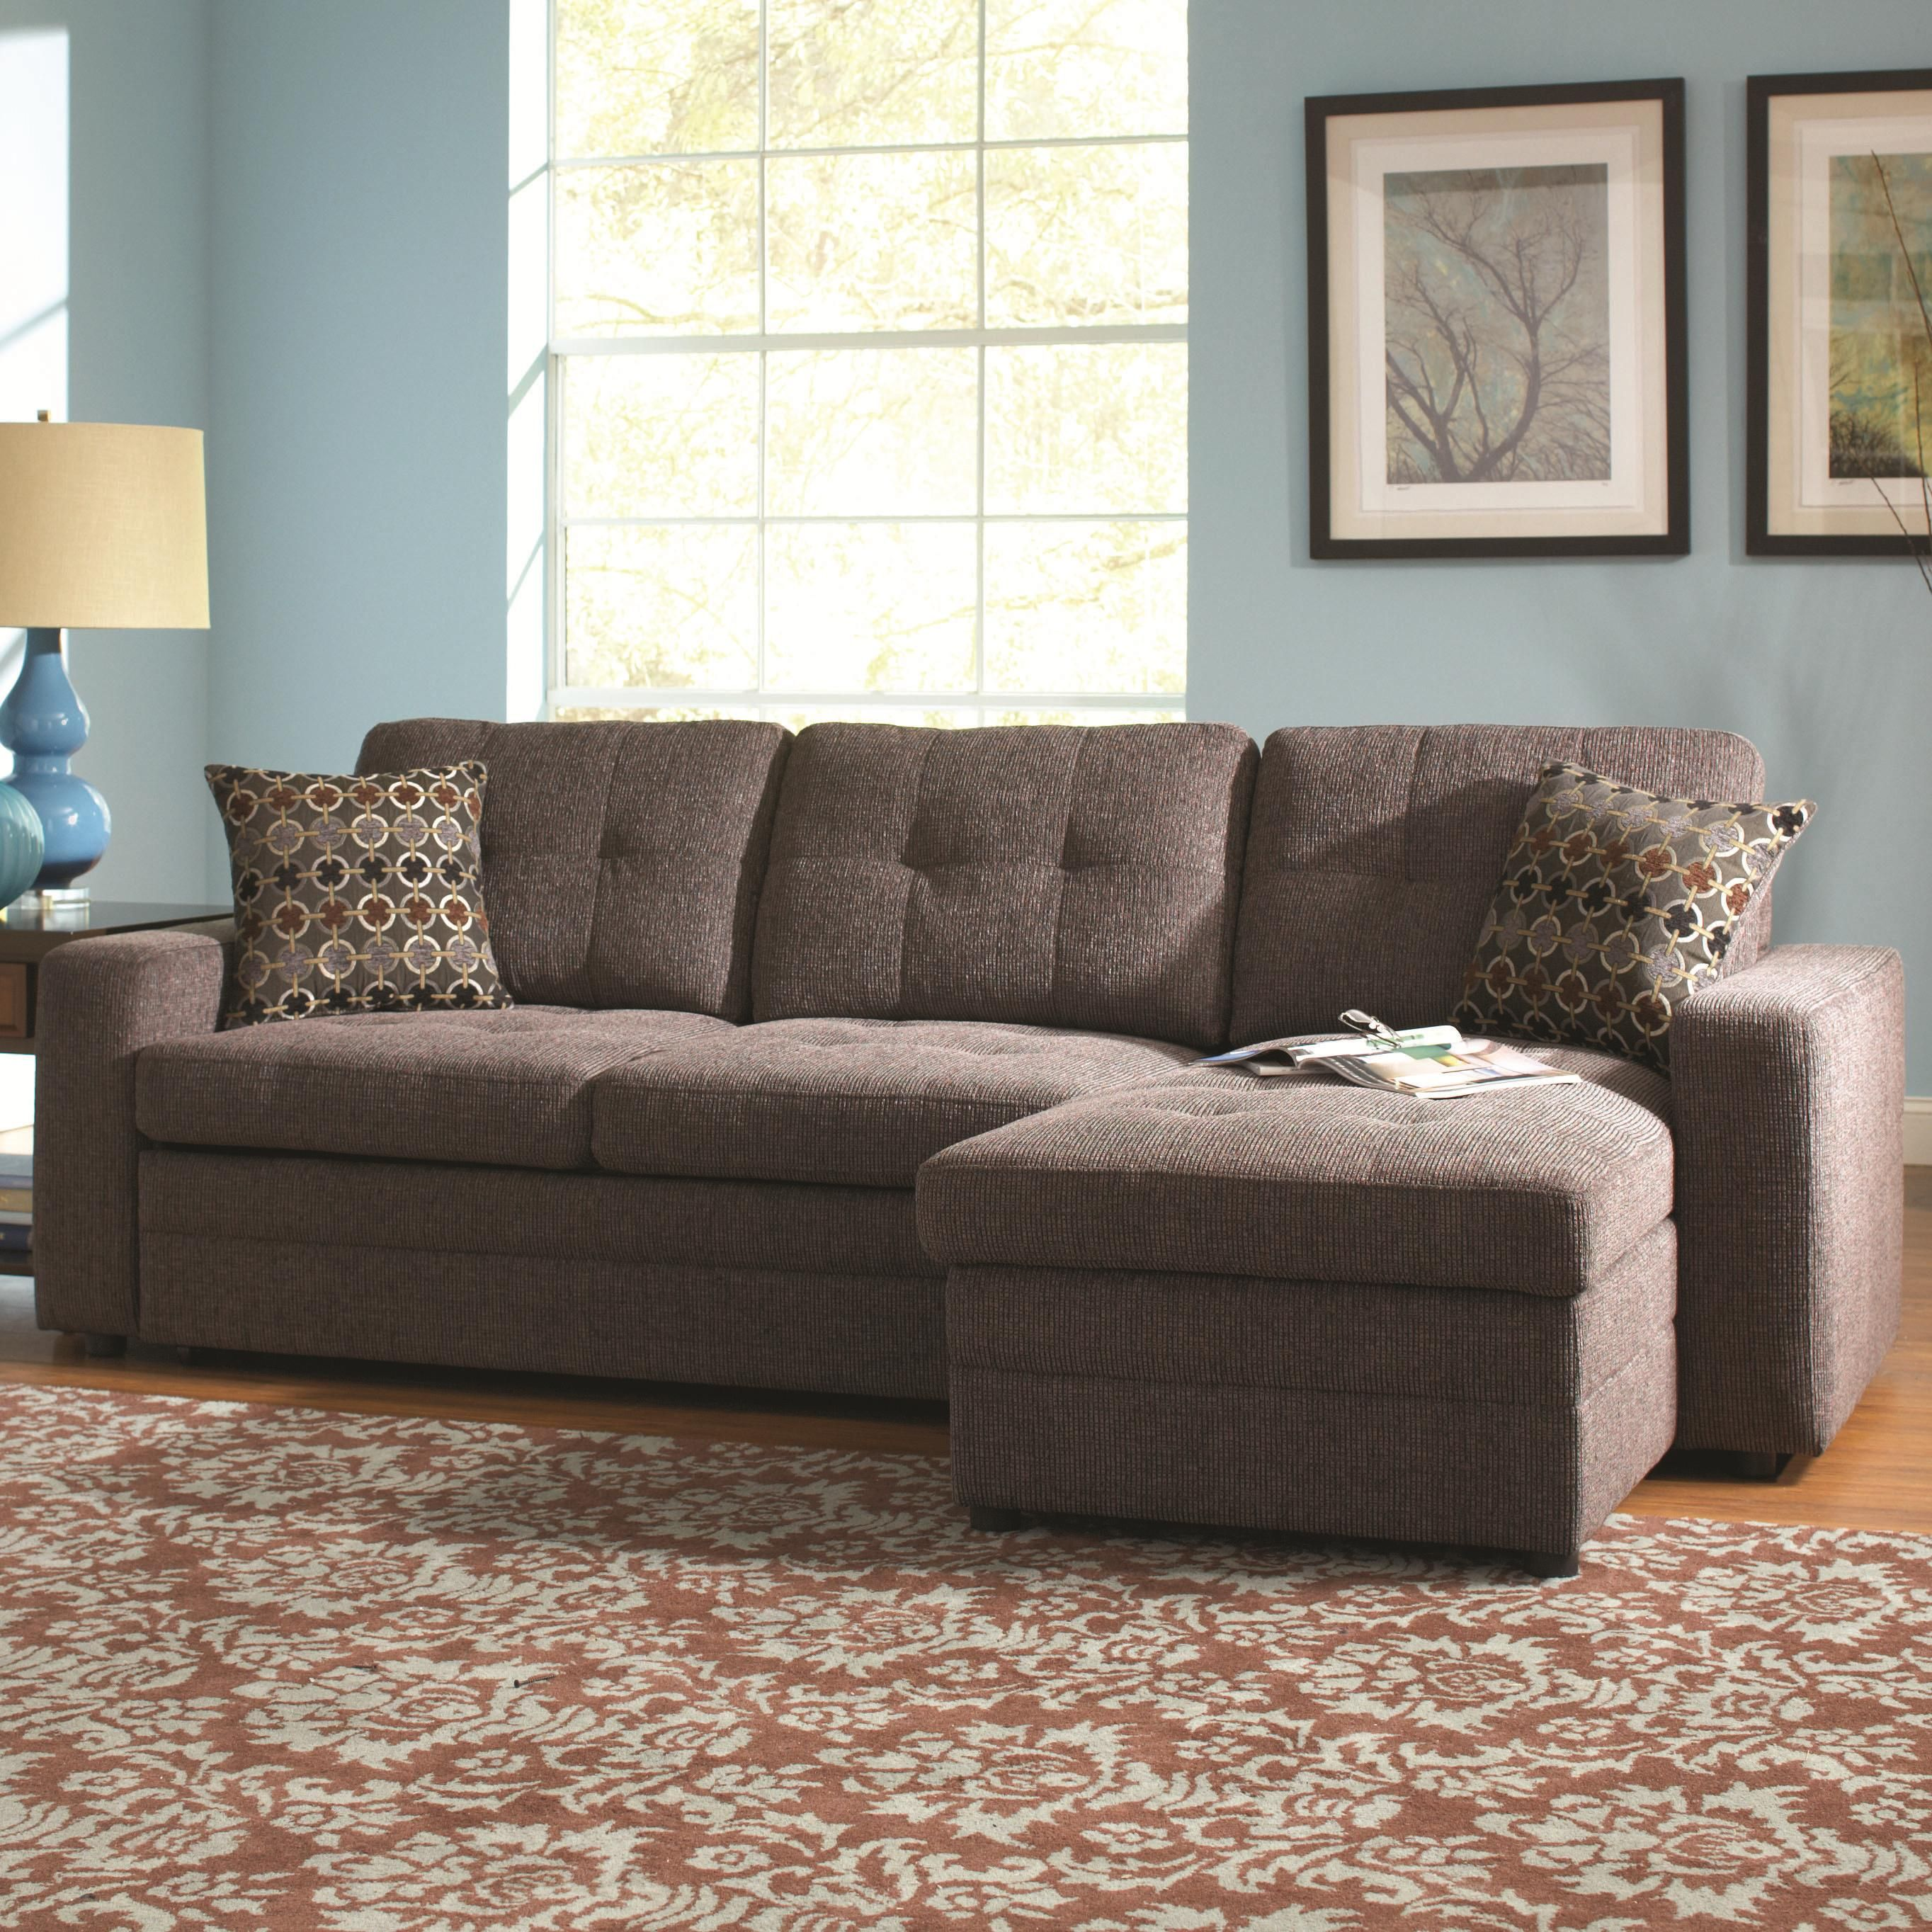 Stupendous Gus Sectional Sofa With Tufts Storage And Pull Out Bed By Andrewgaddart Wooden Chair Designs For Living Room Andrewgaddartcom